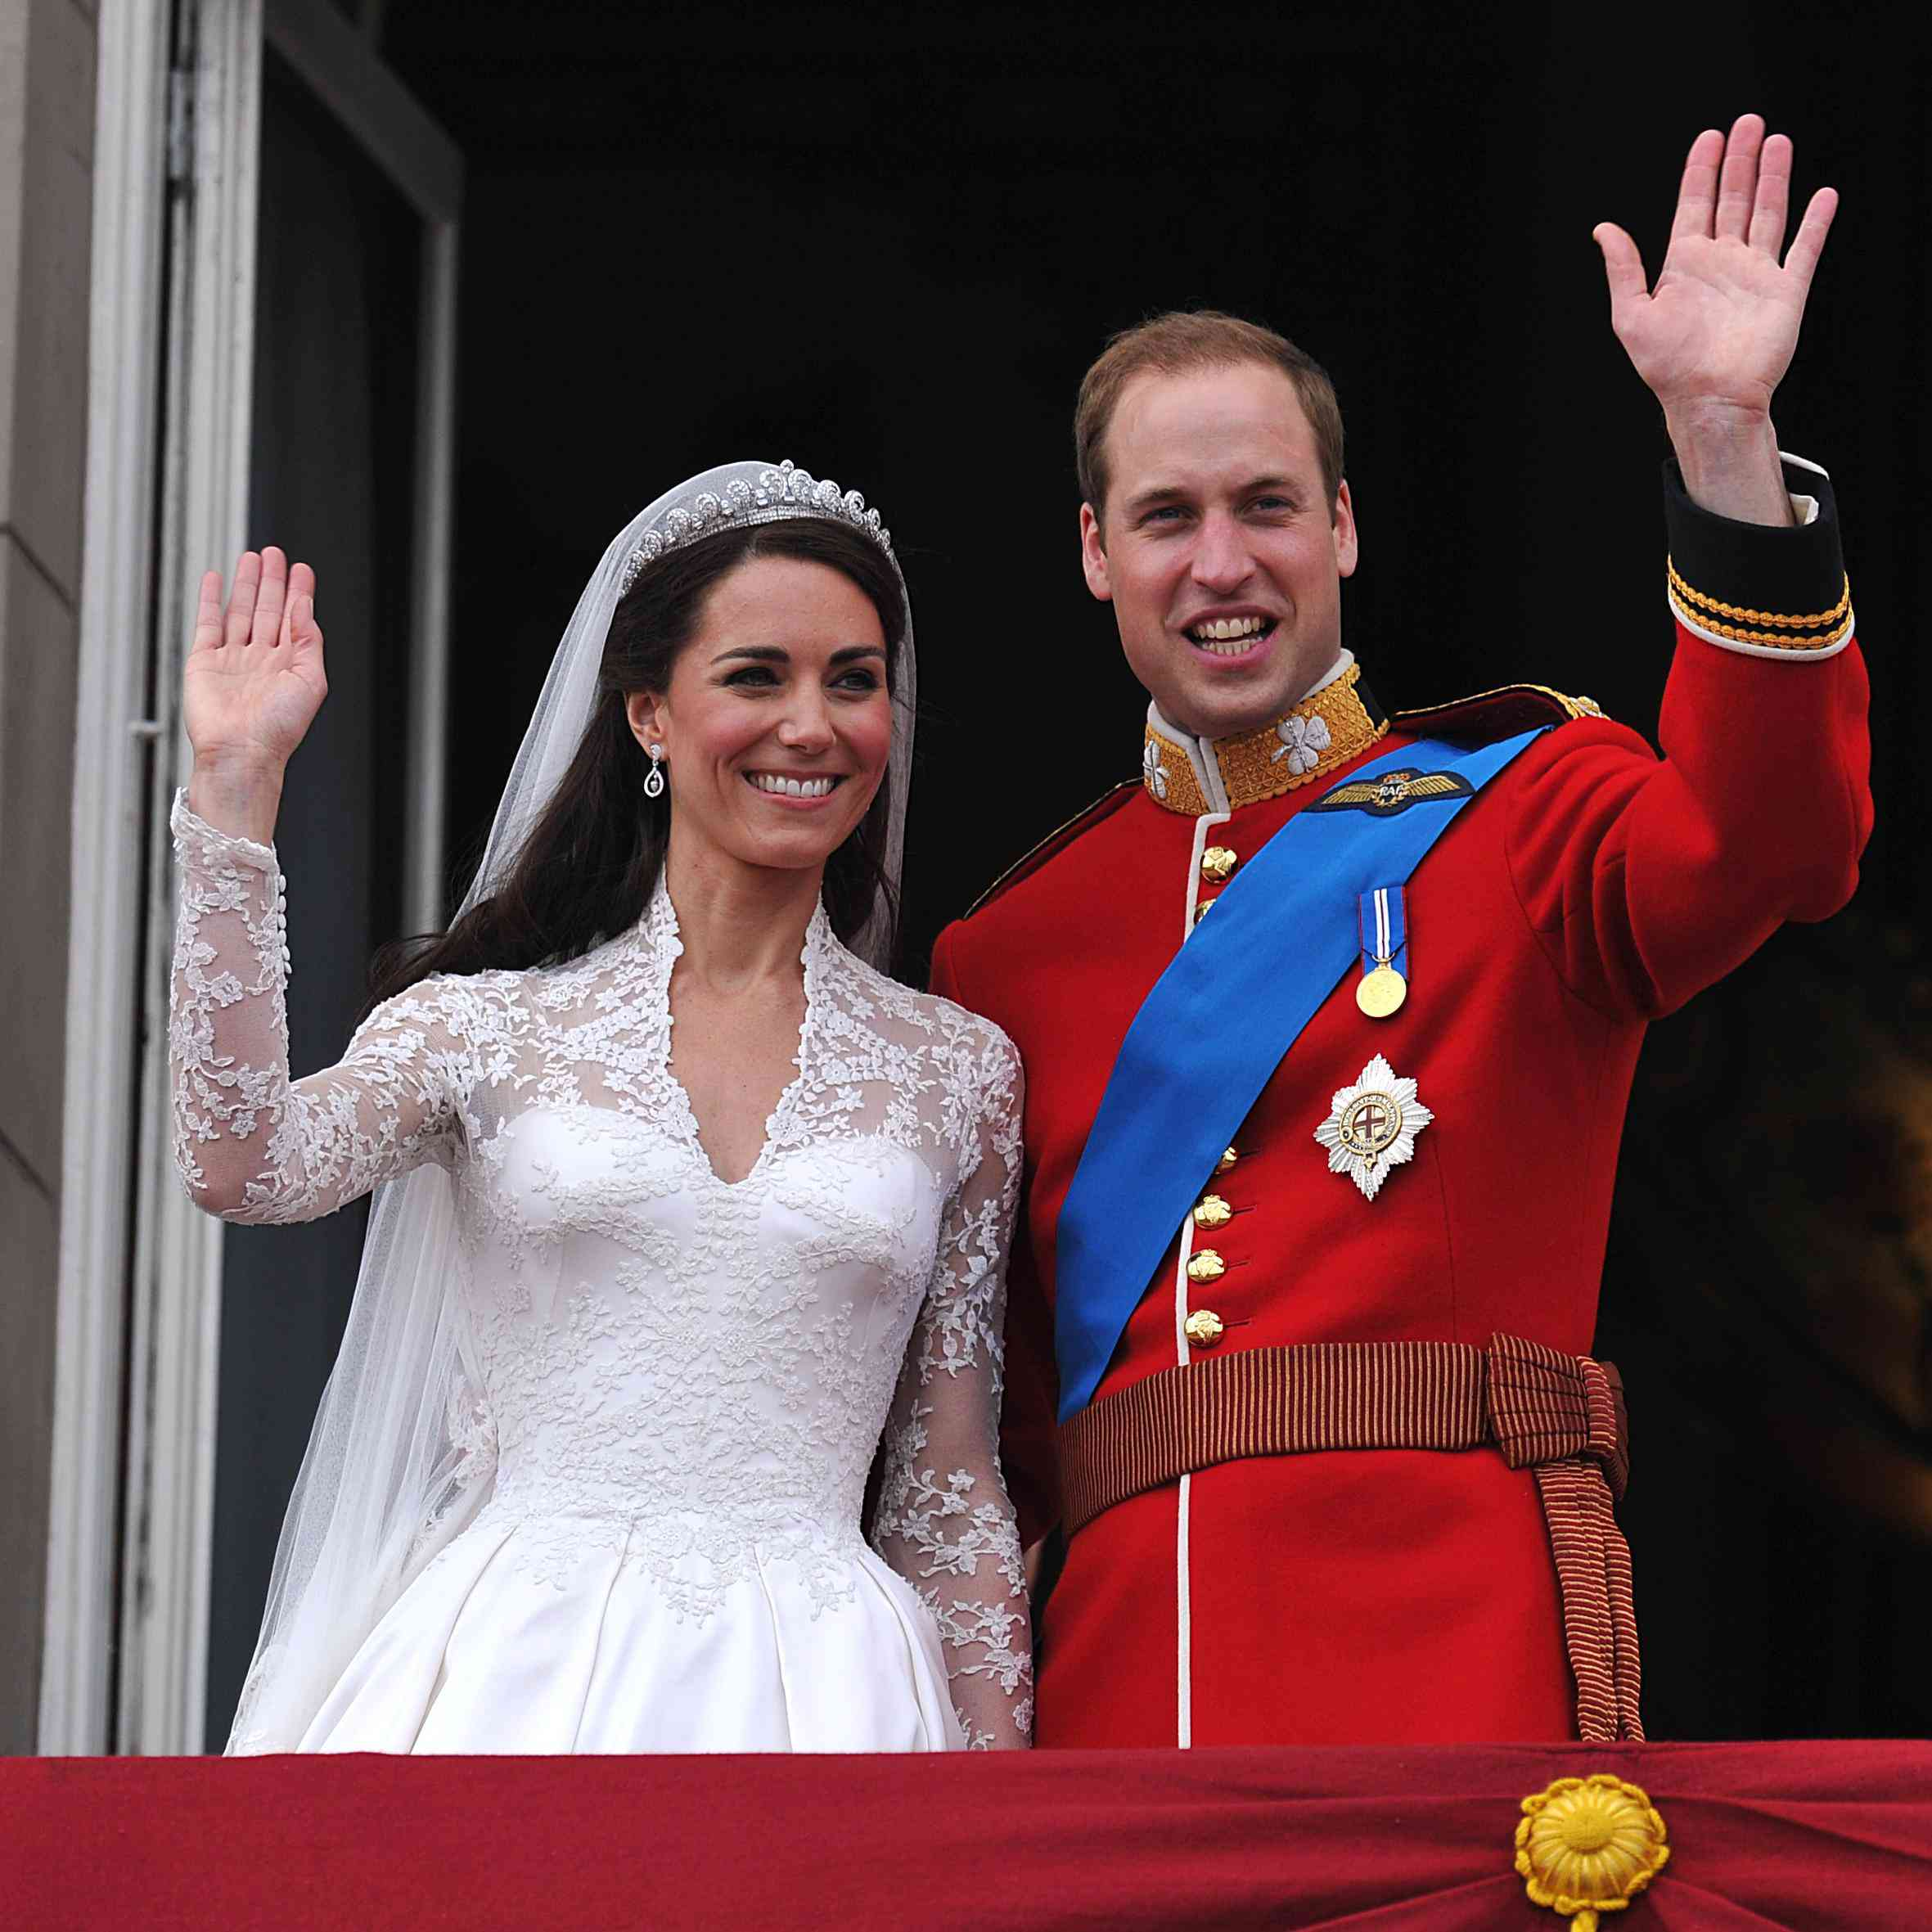 Pictures Of The Royal Wedding.Royal Wedding The 24 Best Dressed Most Decorated Royal Grooms